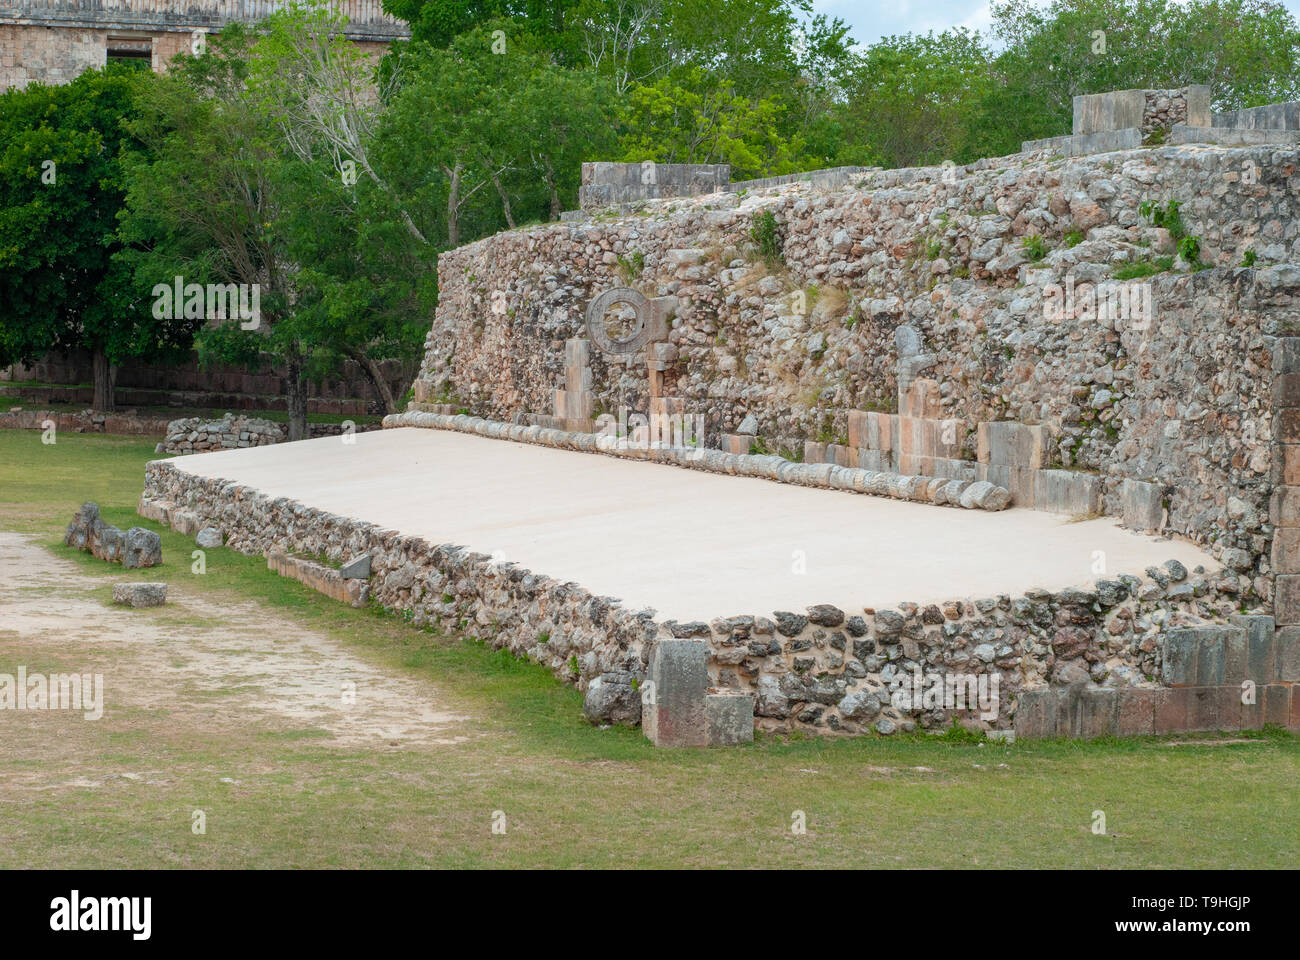 Field for the Mayan game of the Pelota, with ring on the summit, in the archaeological area of Ek Balam, in the Yucatan peninsula - Stock Image